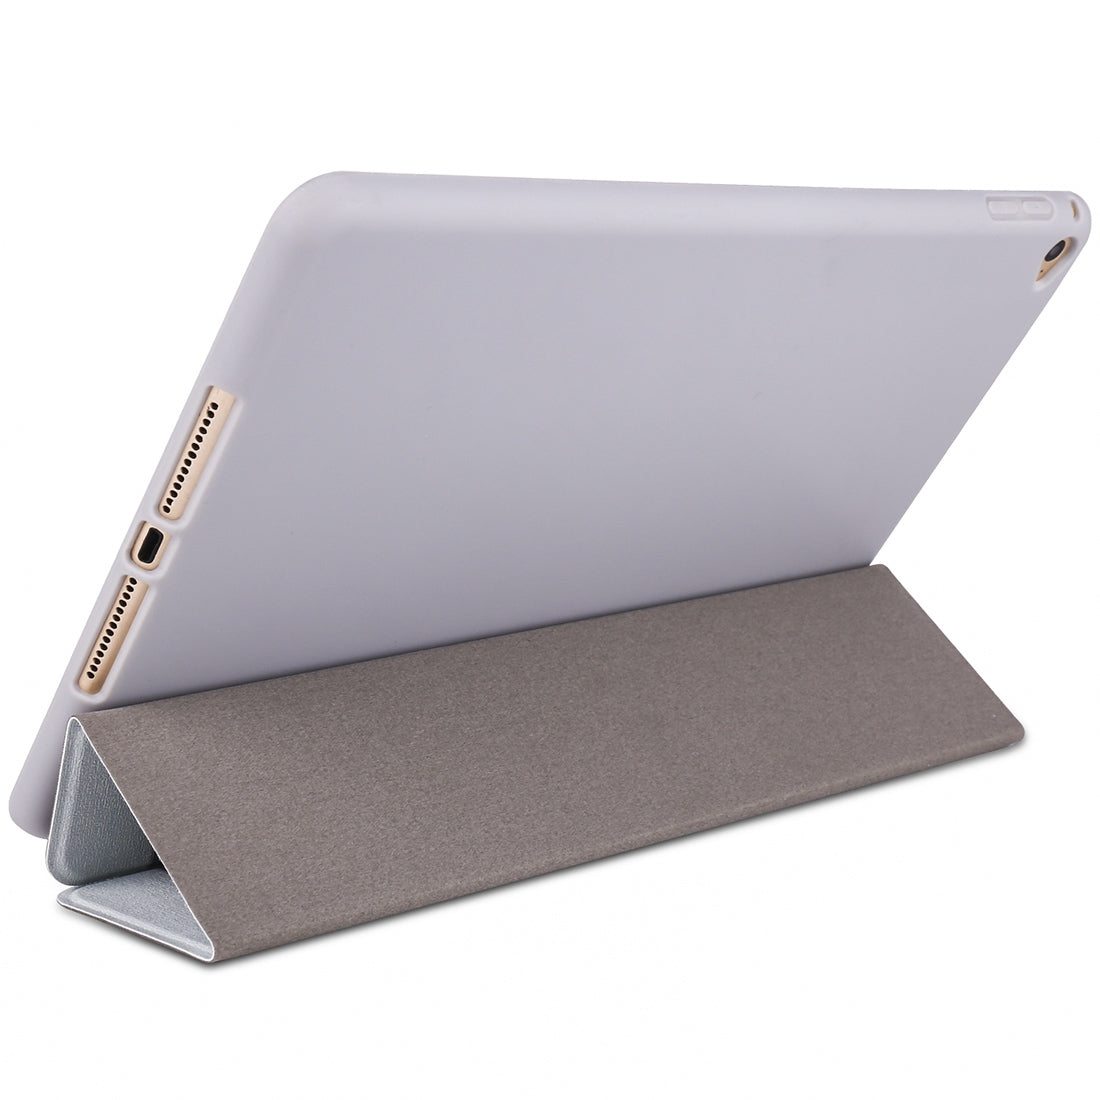 Panda Pattern Horizontal Flip PU Leather Case for iPad mini 4, with Three-folding Holder & Honeycomb TPU Cover